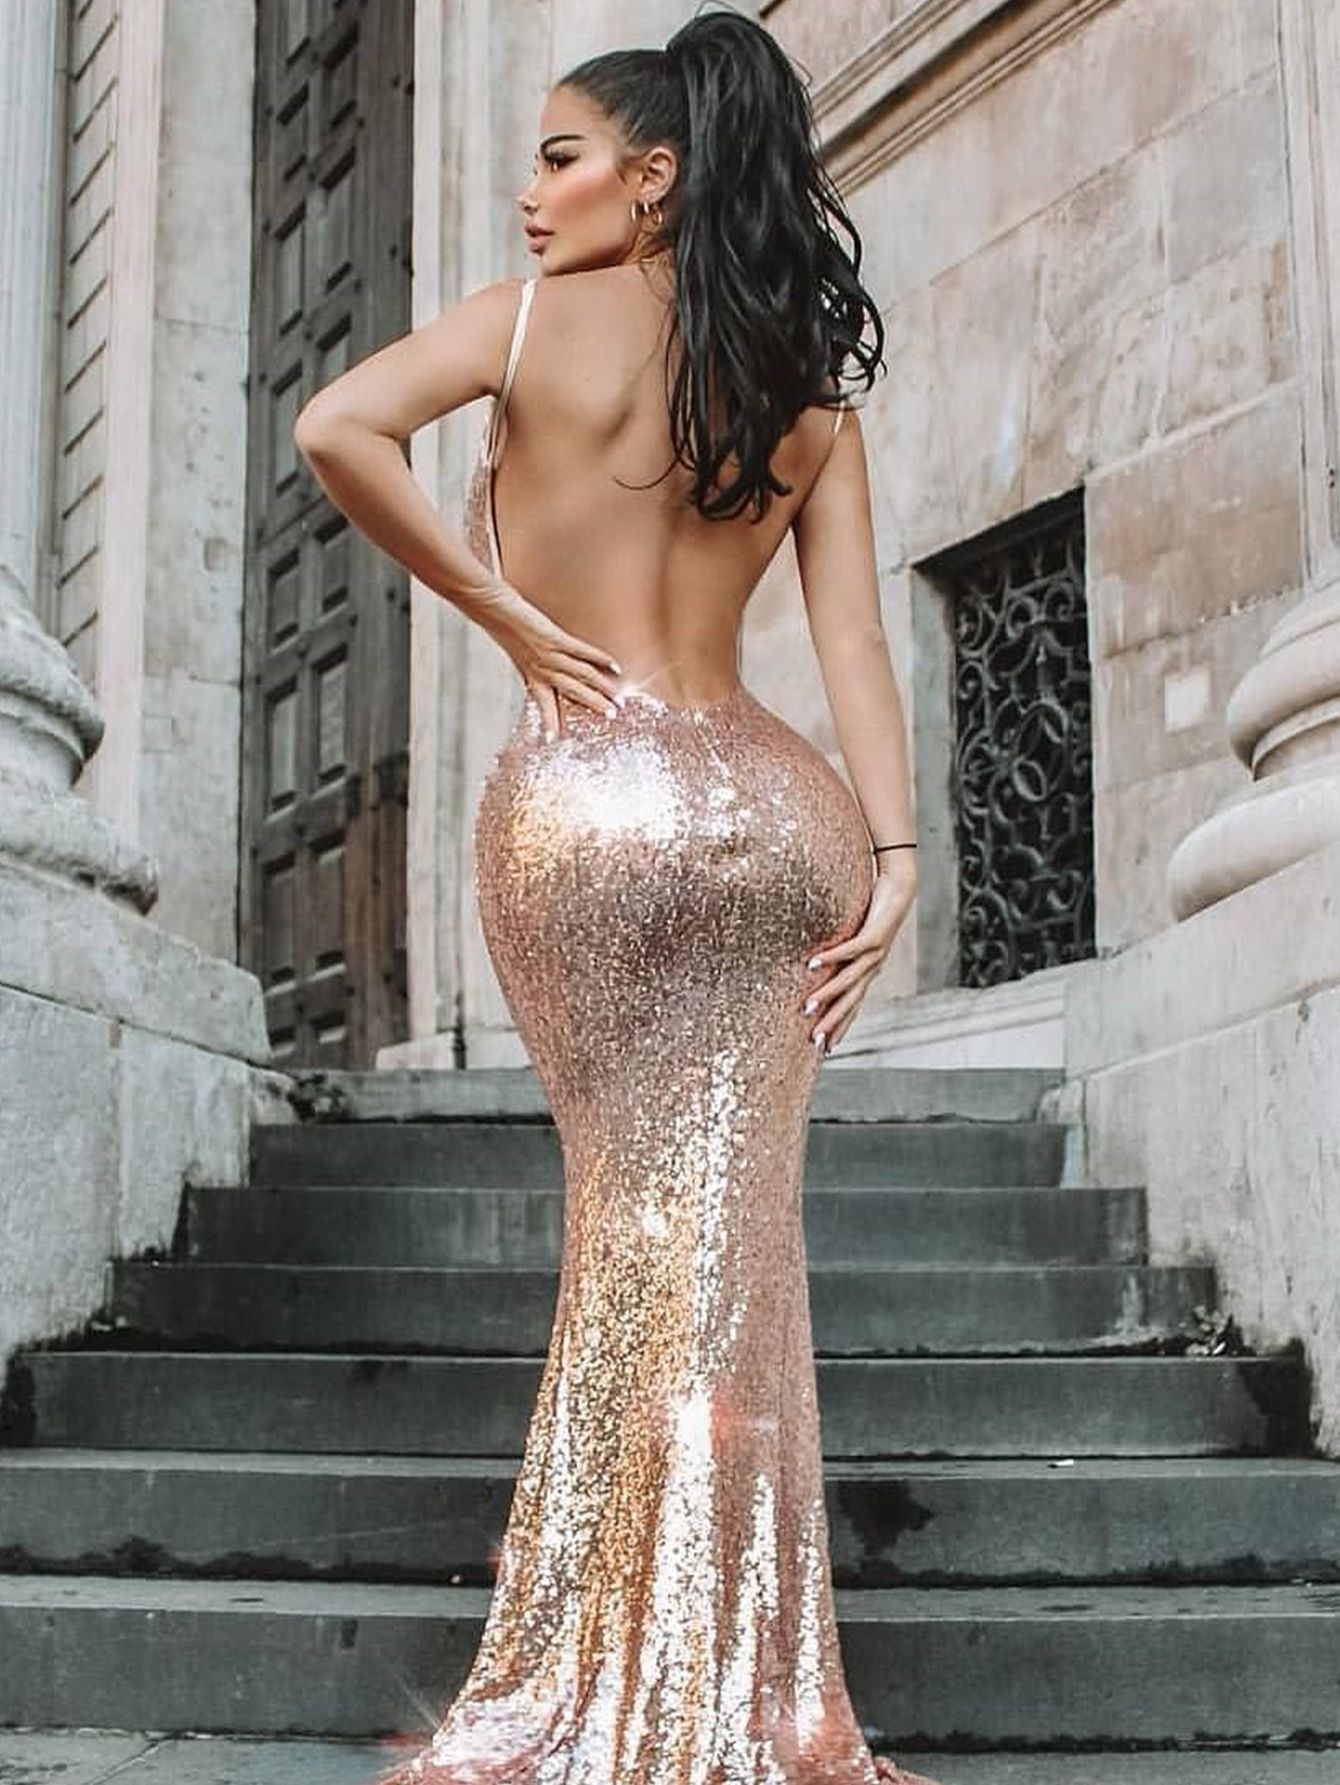 Pin On Popviva Gown Obsessed [ 1785 x 1340 Pixel ]